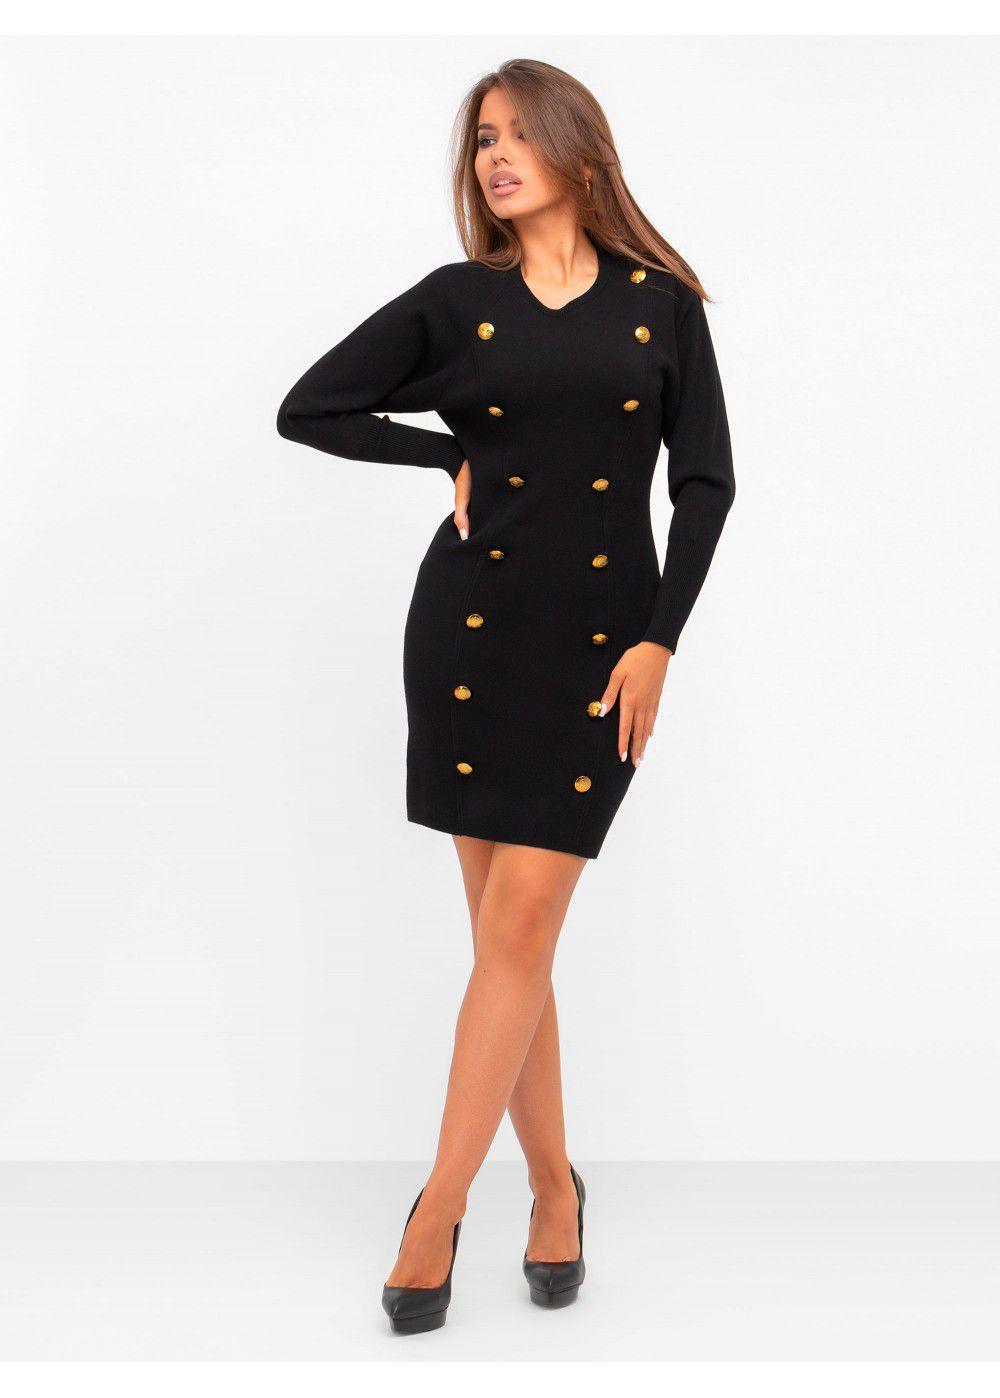 A.L.C. Black Mini Dress